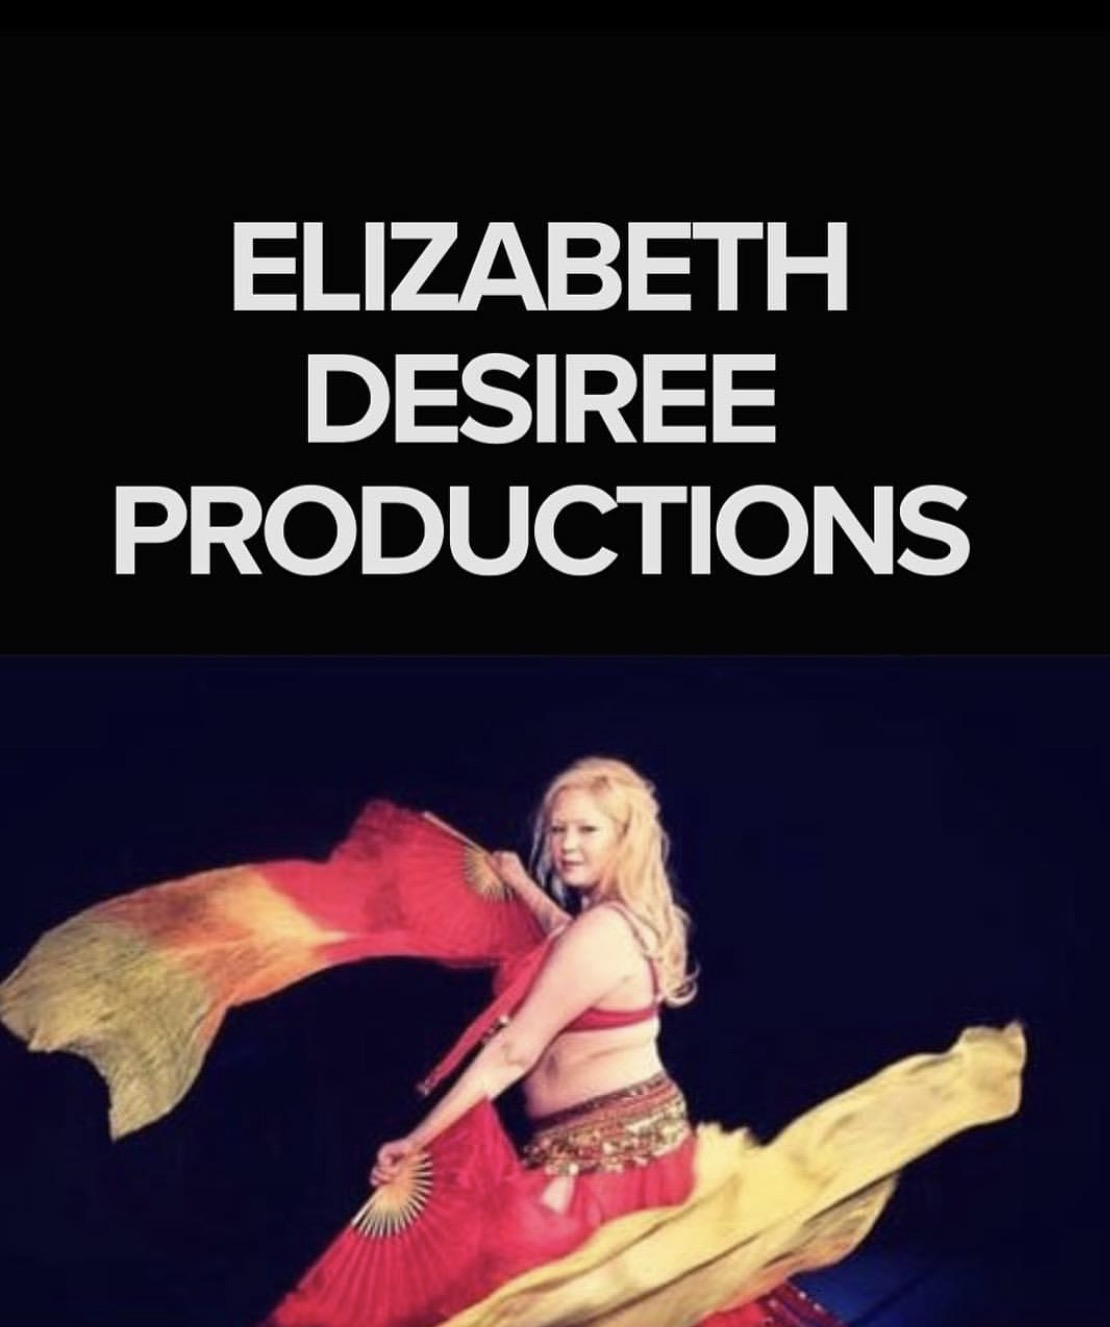 Elizabeth Desiree Productions